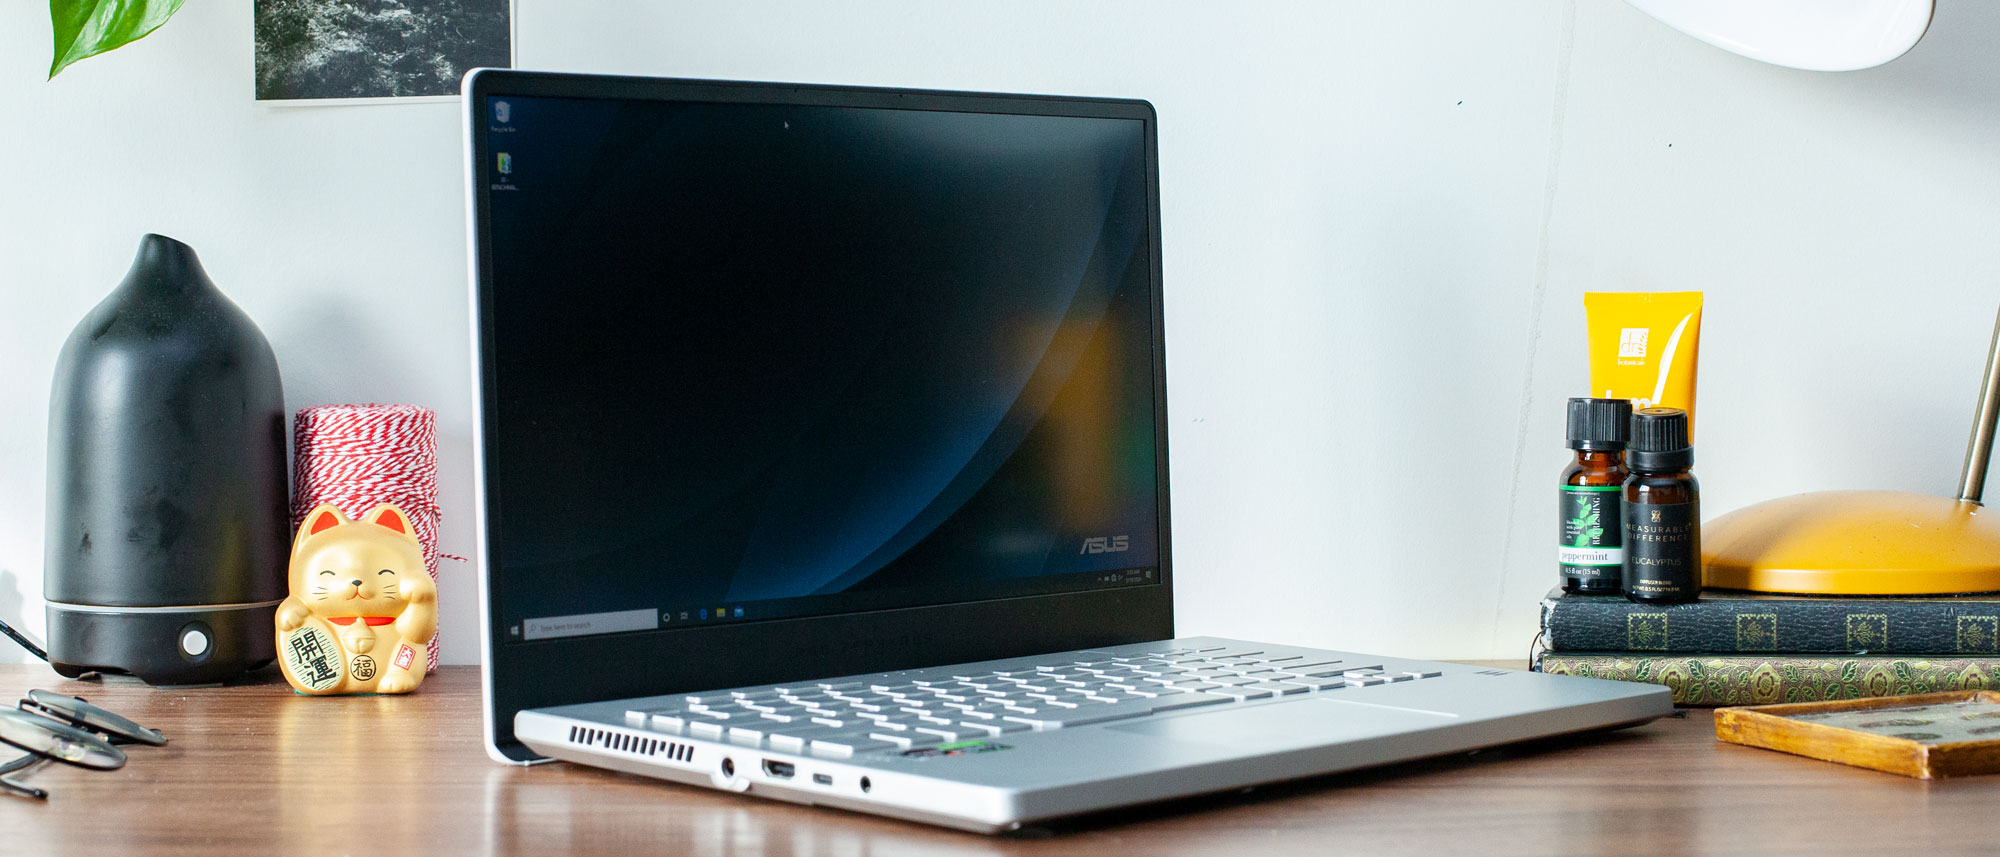 Asus Zephyrus G14 Review Techradar